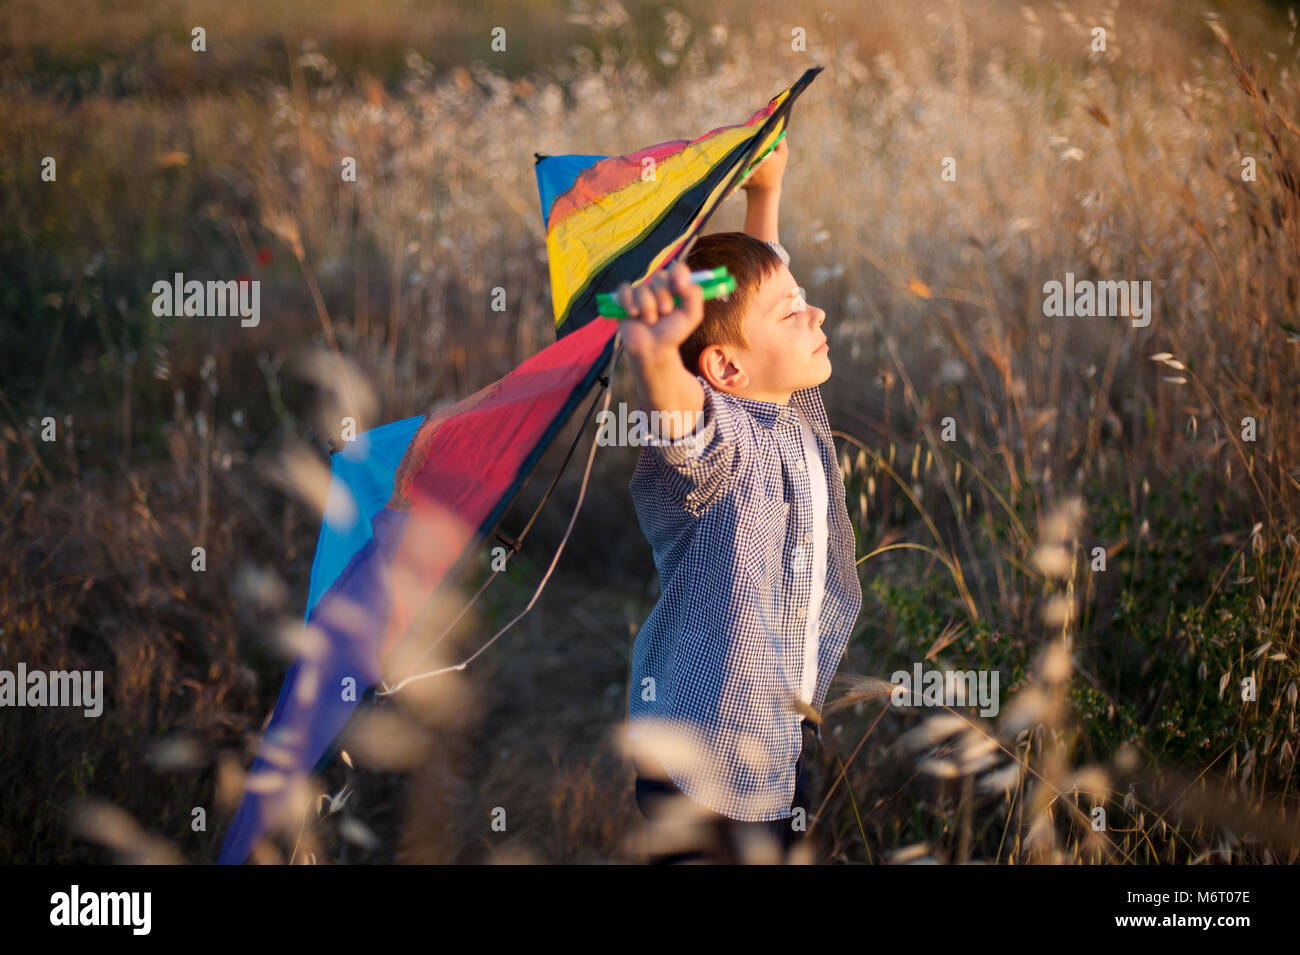 dreamy little boy with his eyes closed keeps colorful kite above his head in the field Stock Photo